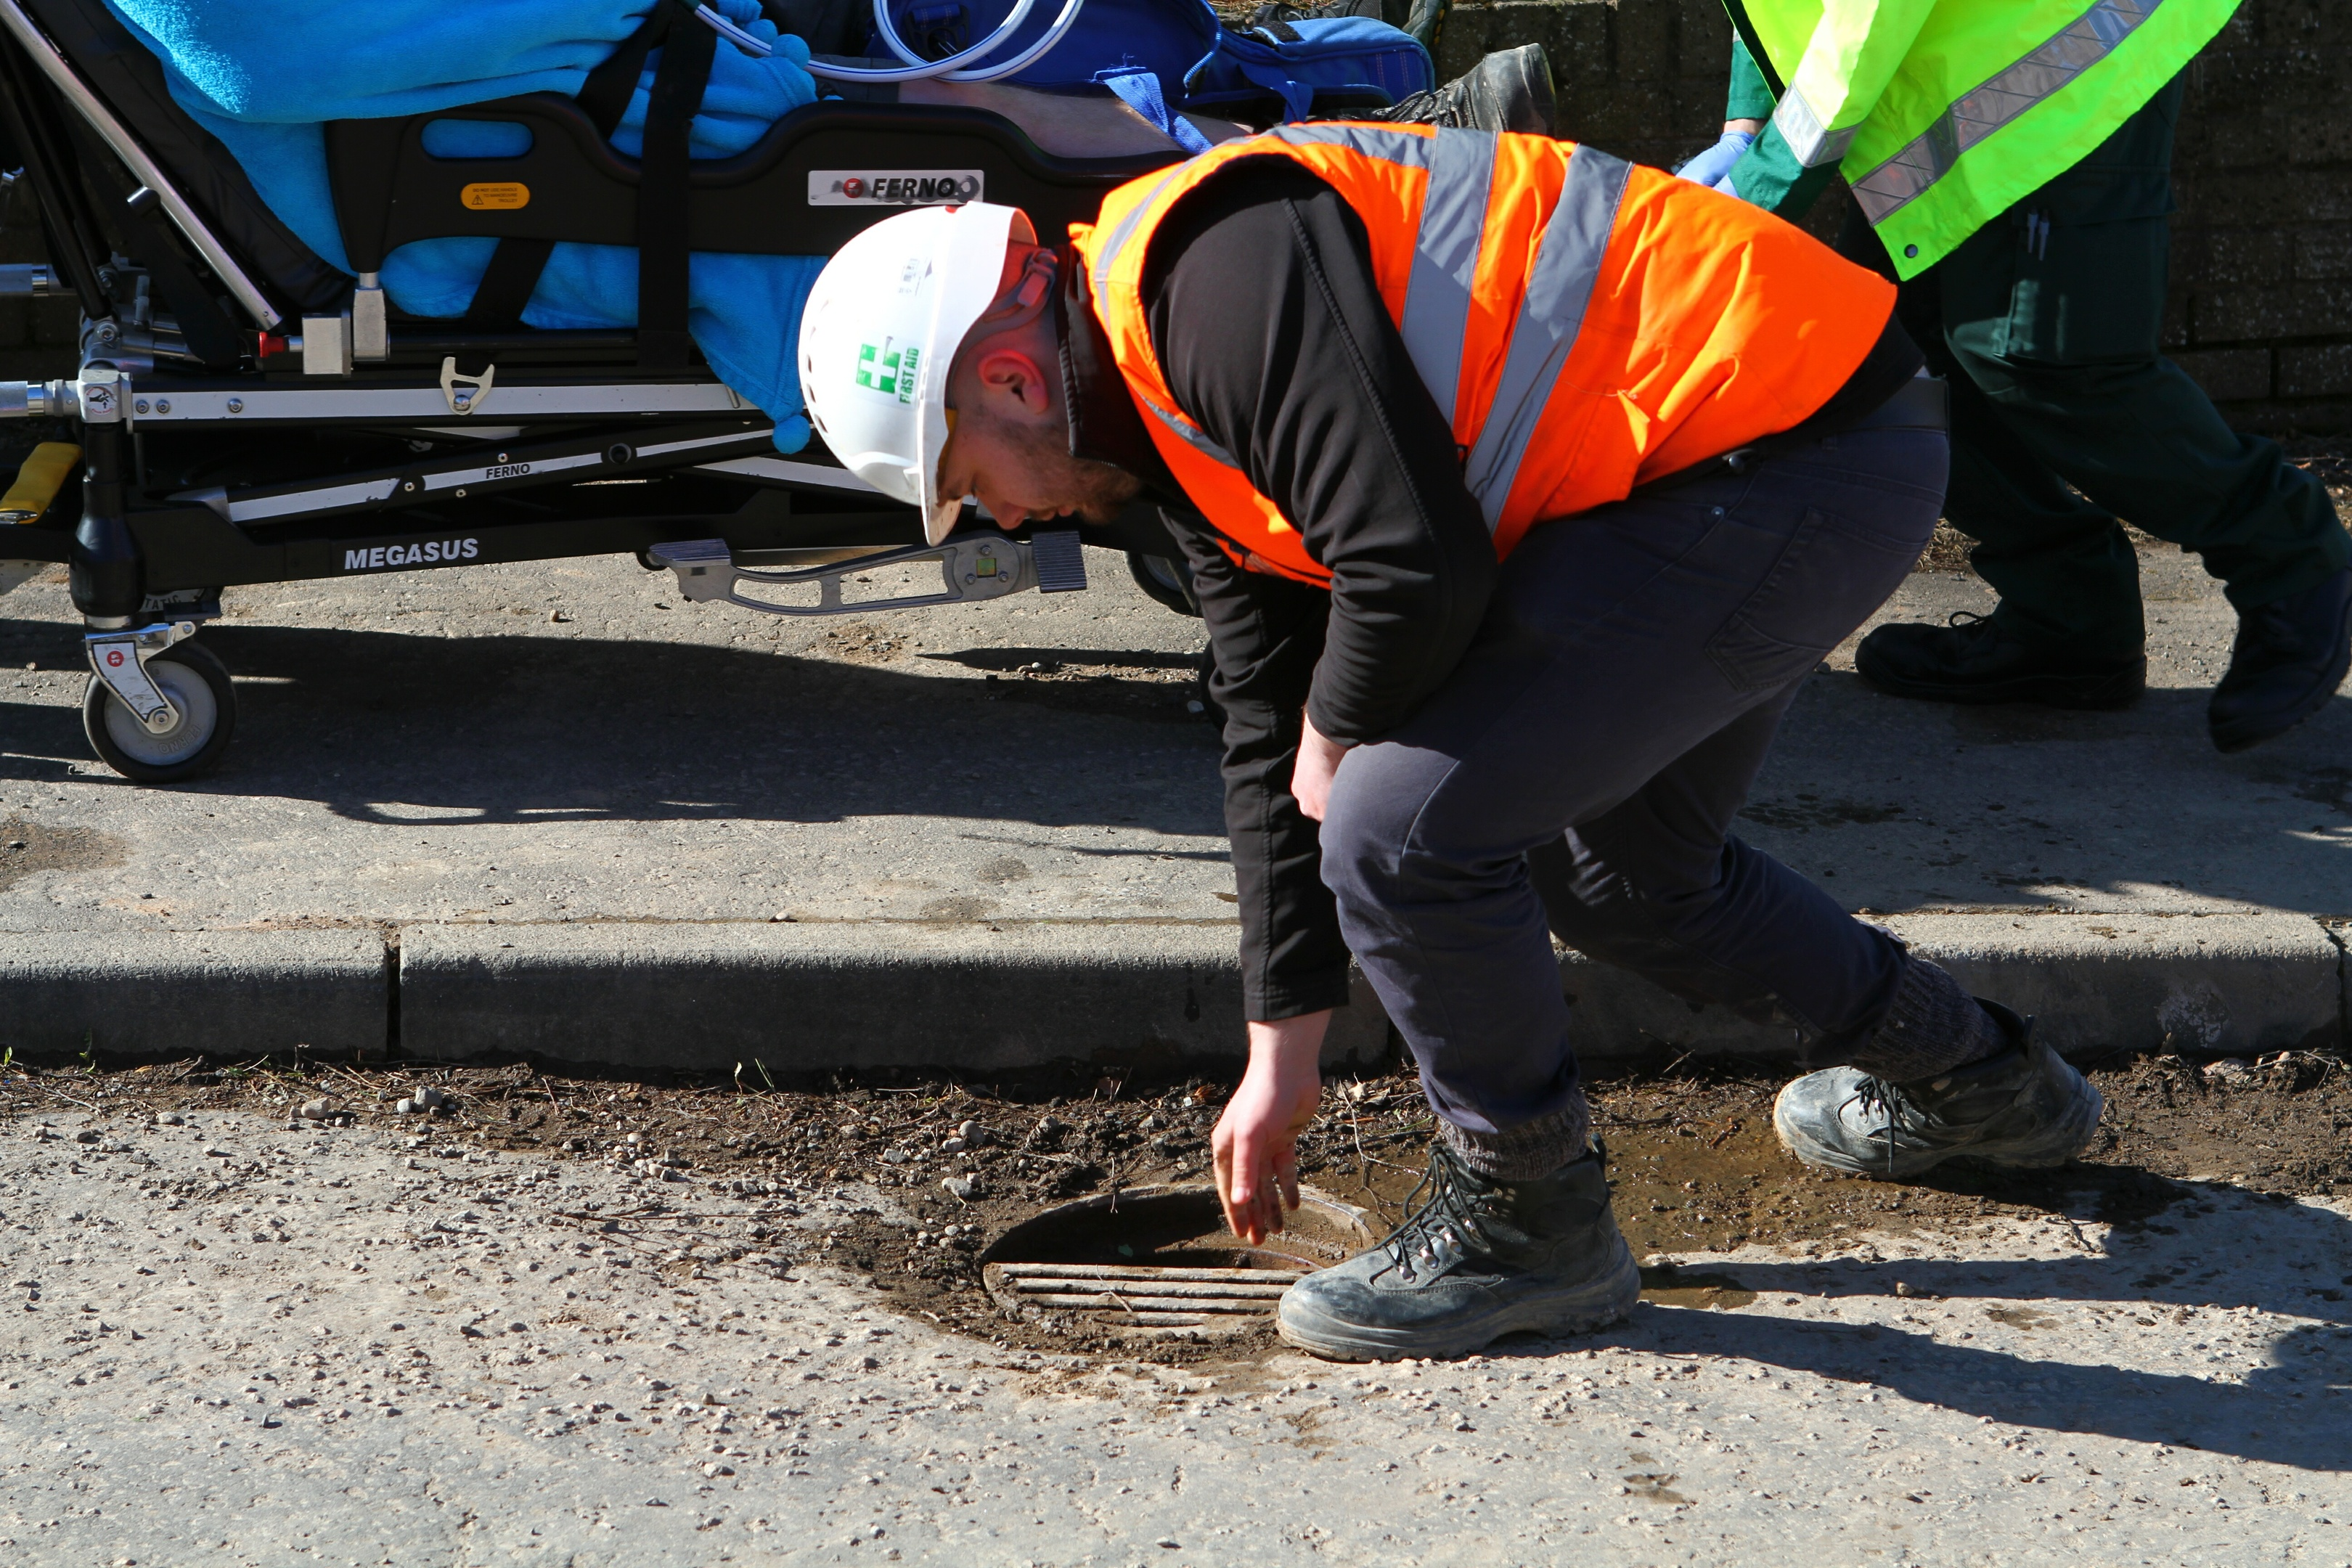 A workman replaces the cover of the drain that Mark Davidson, an employee with Buildbase, fell into